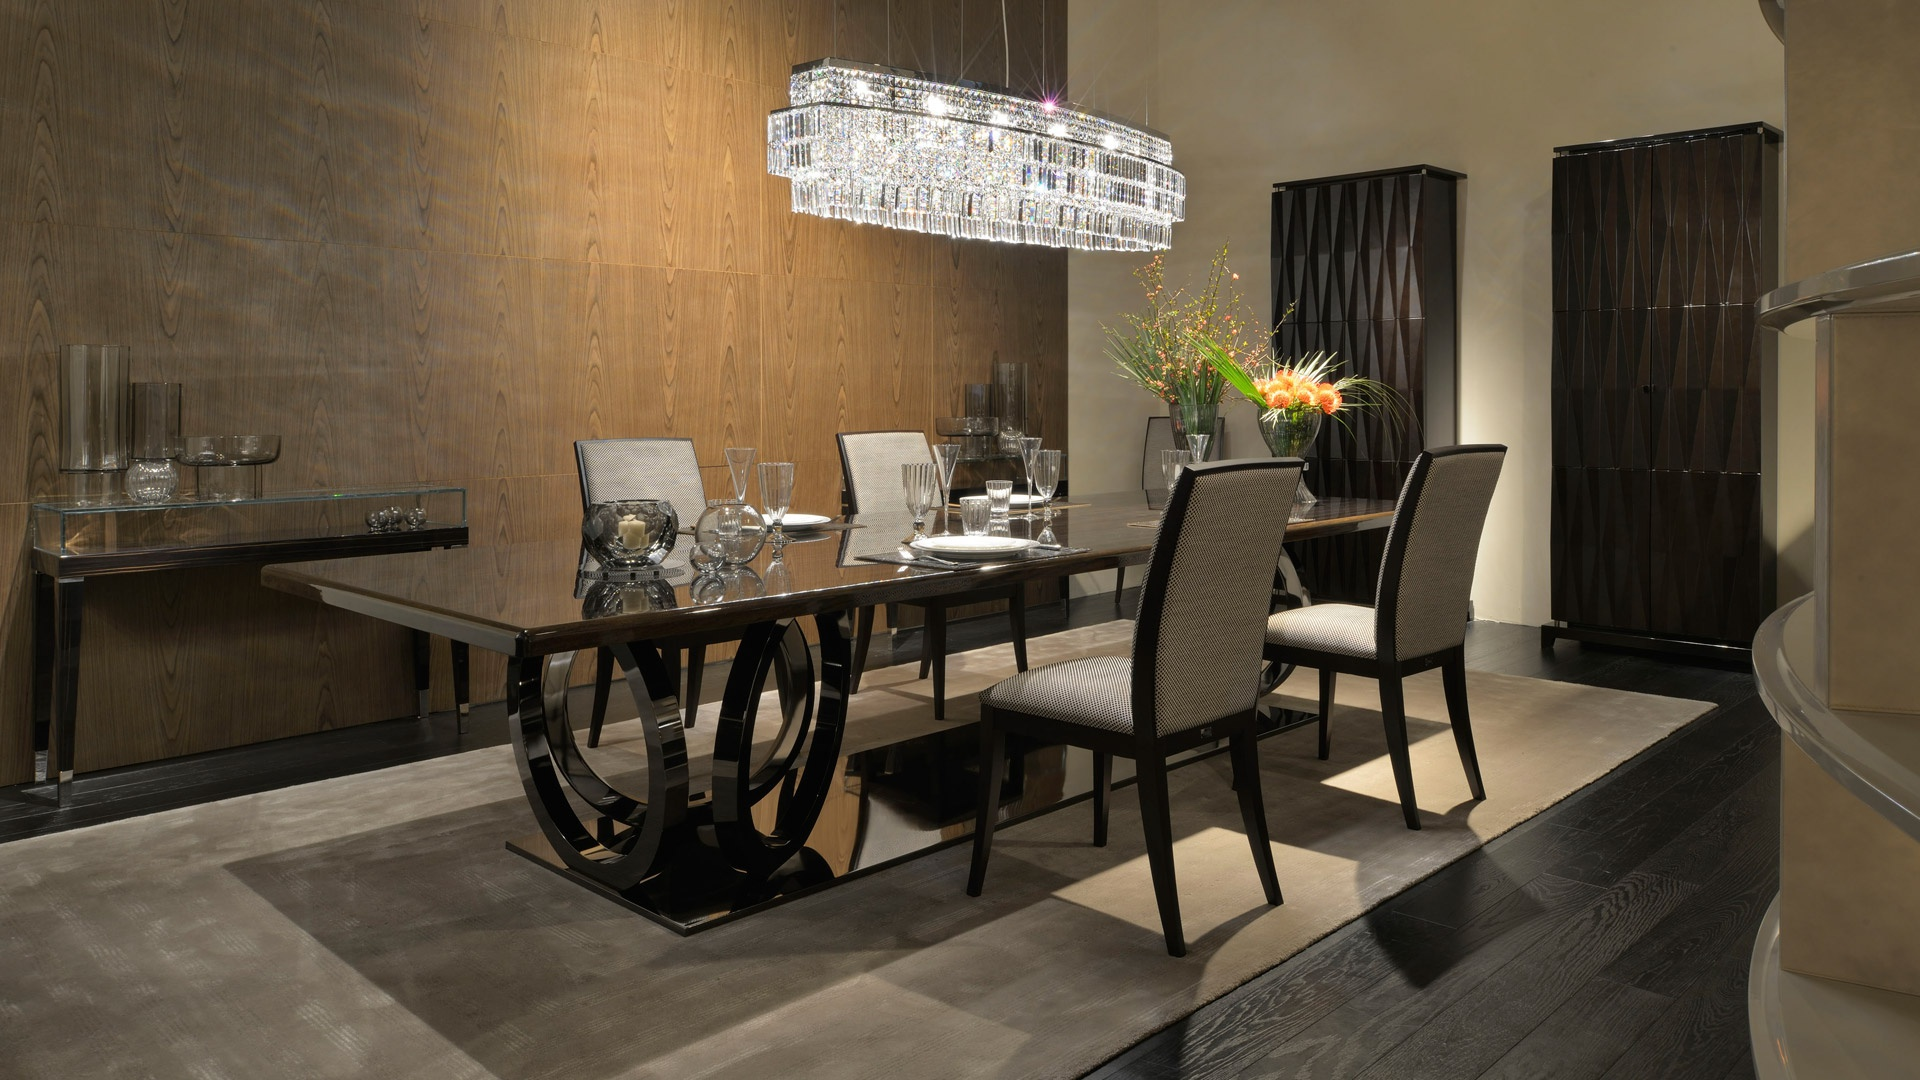 Dining rectangular table natural wood Galileo Fendi  : 1396543173863w4000h3200 from www.luxuryfurnituremr.com size 1920 x 1080 jpeg 513kB